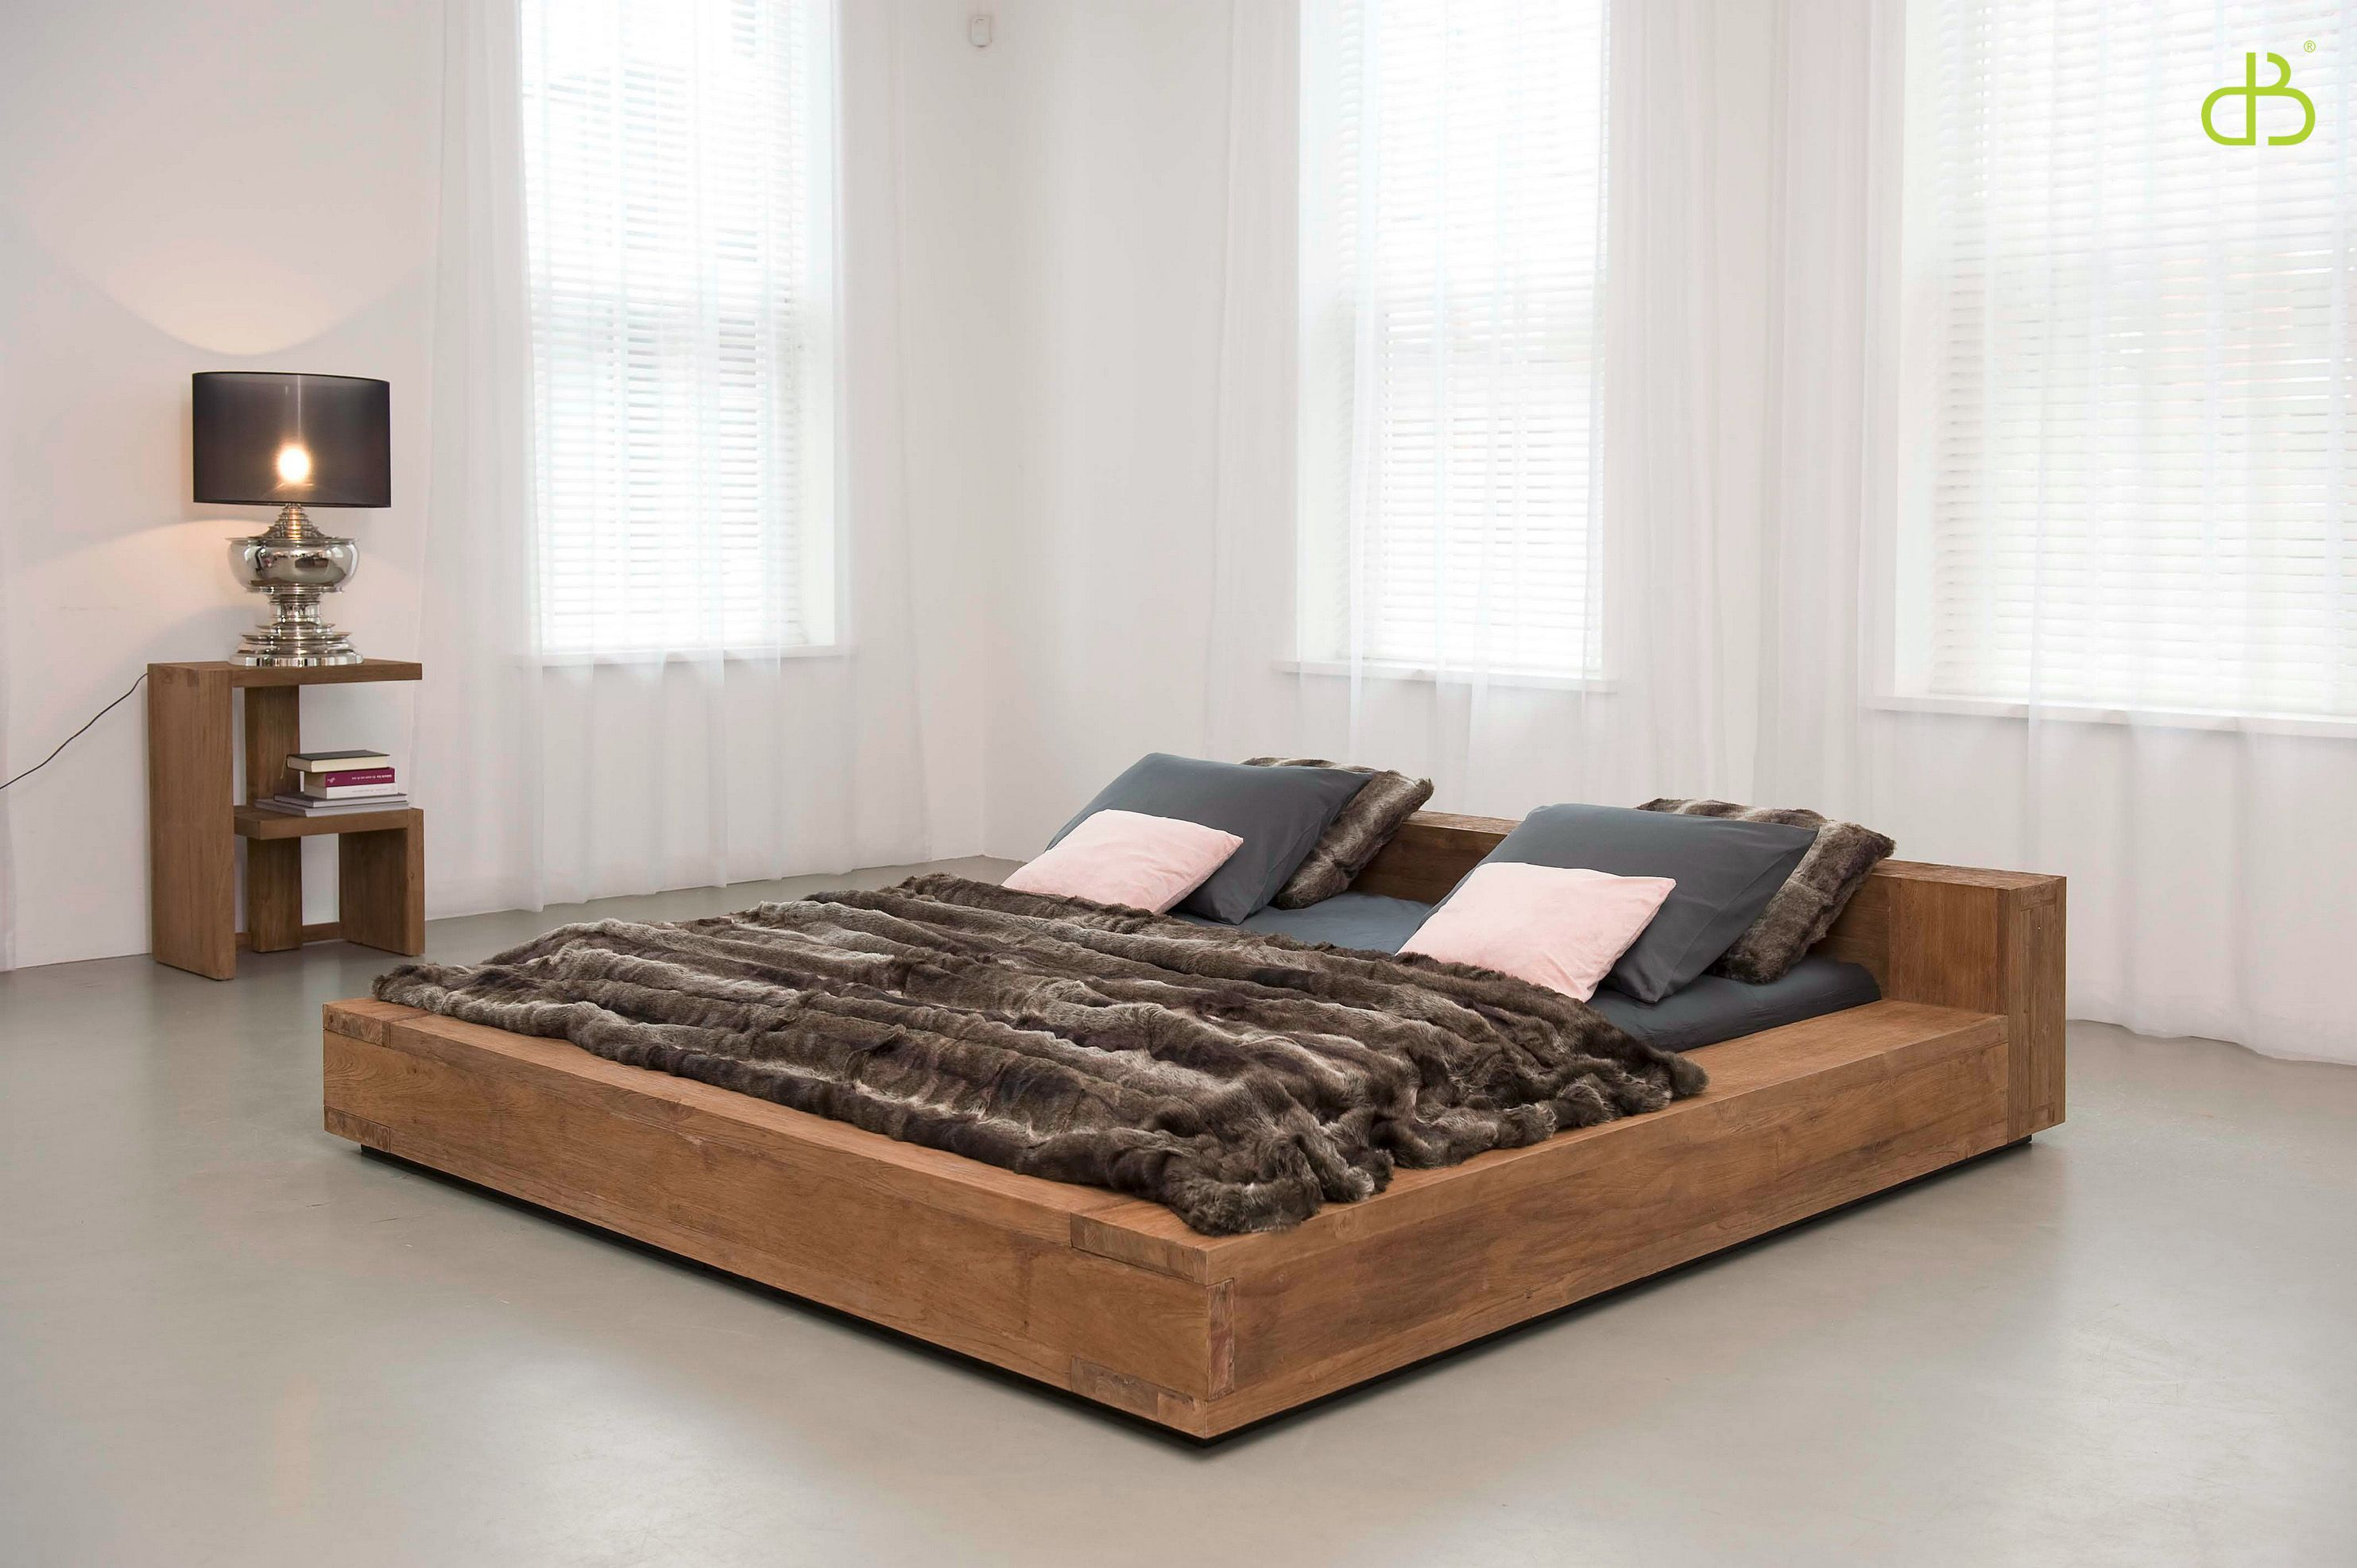 Queensized bed from the Lekk Home & Decor Singapore